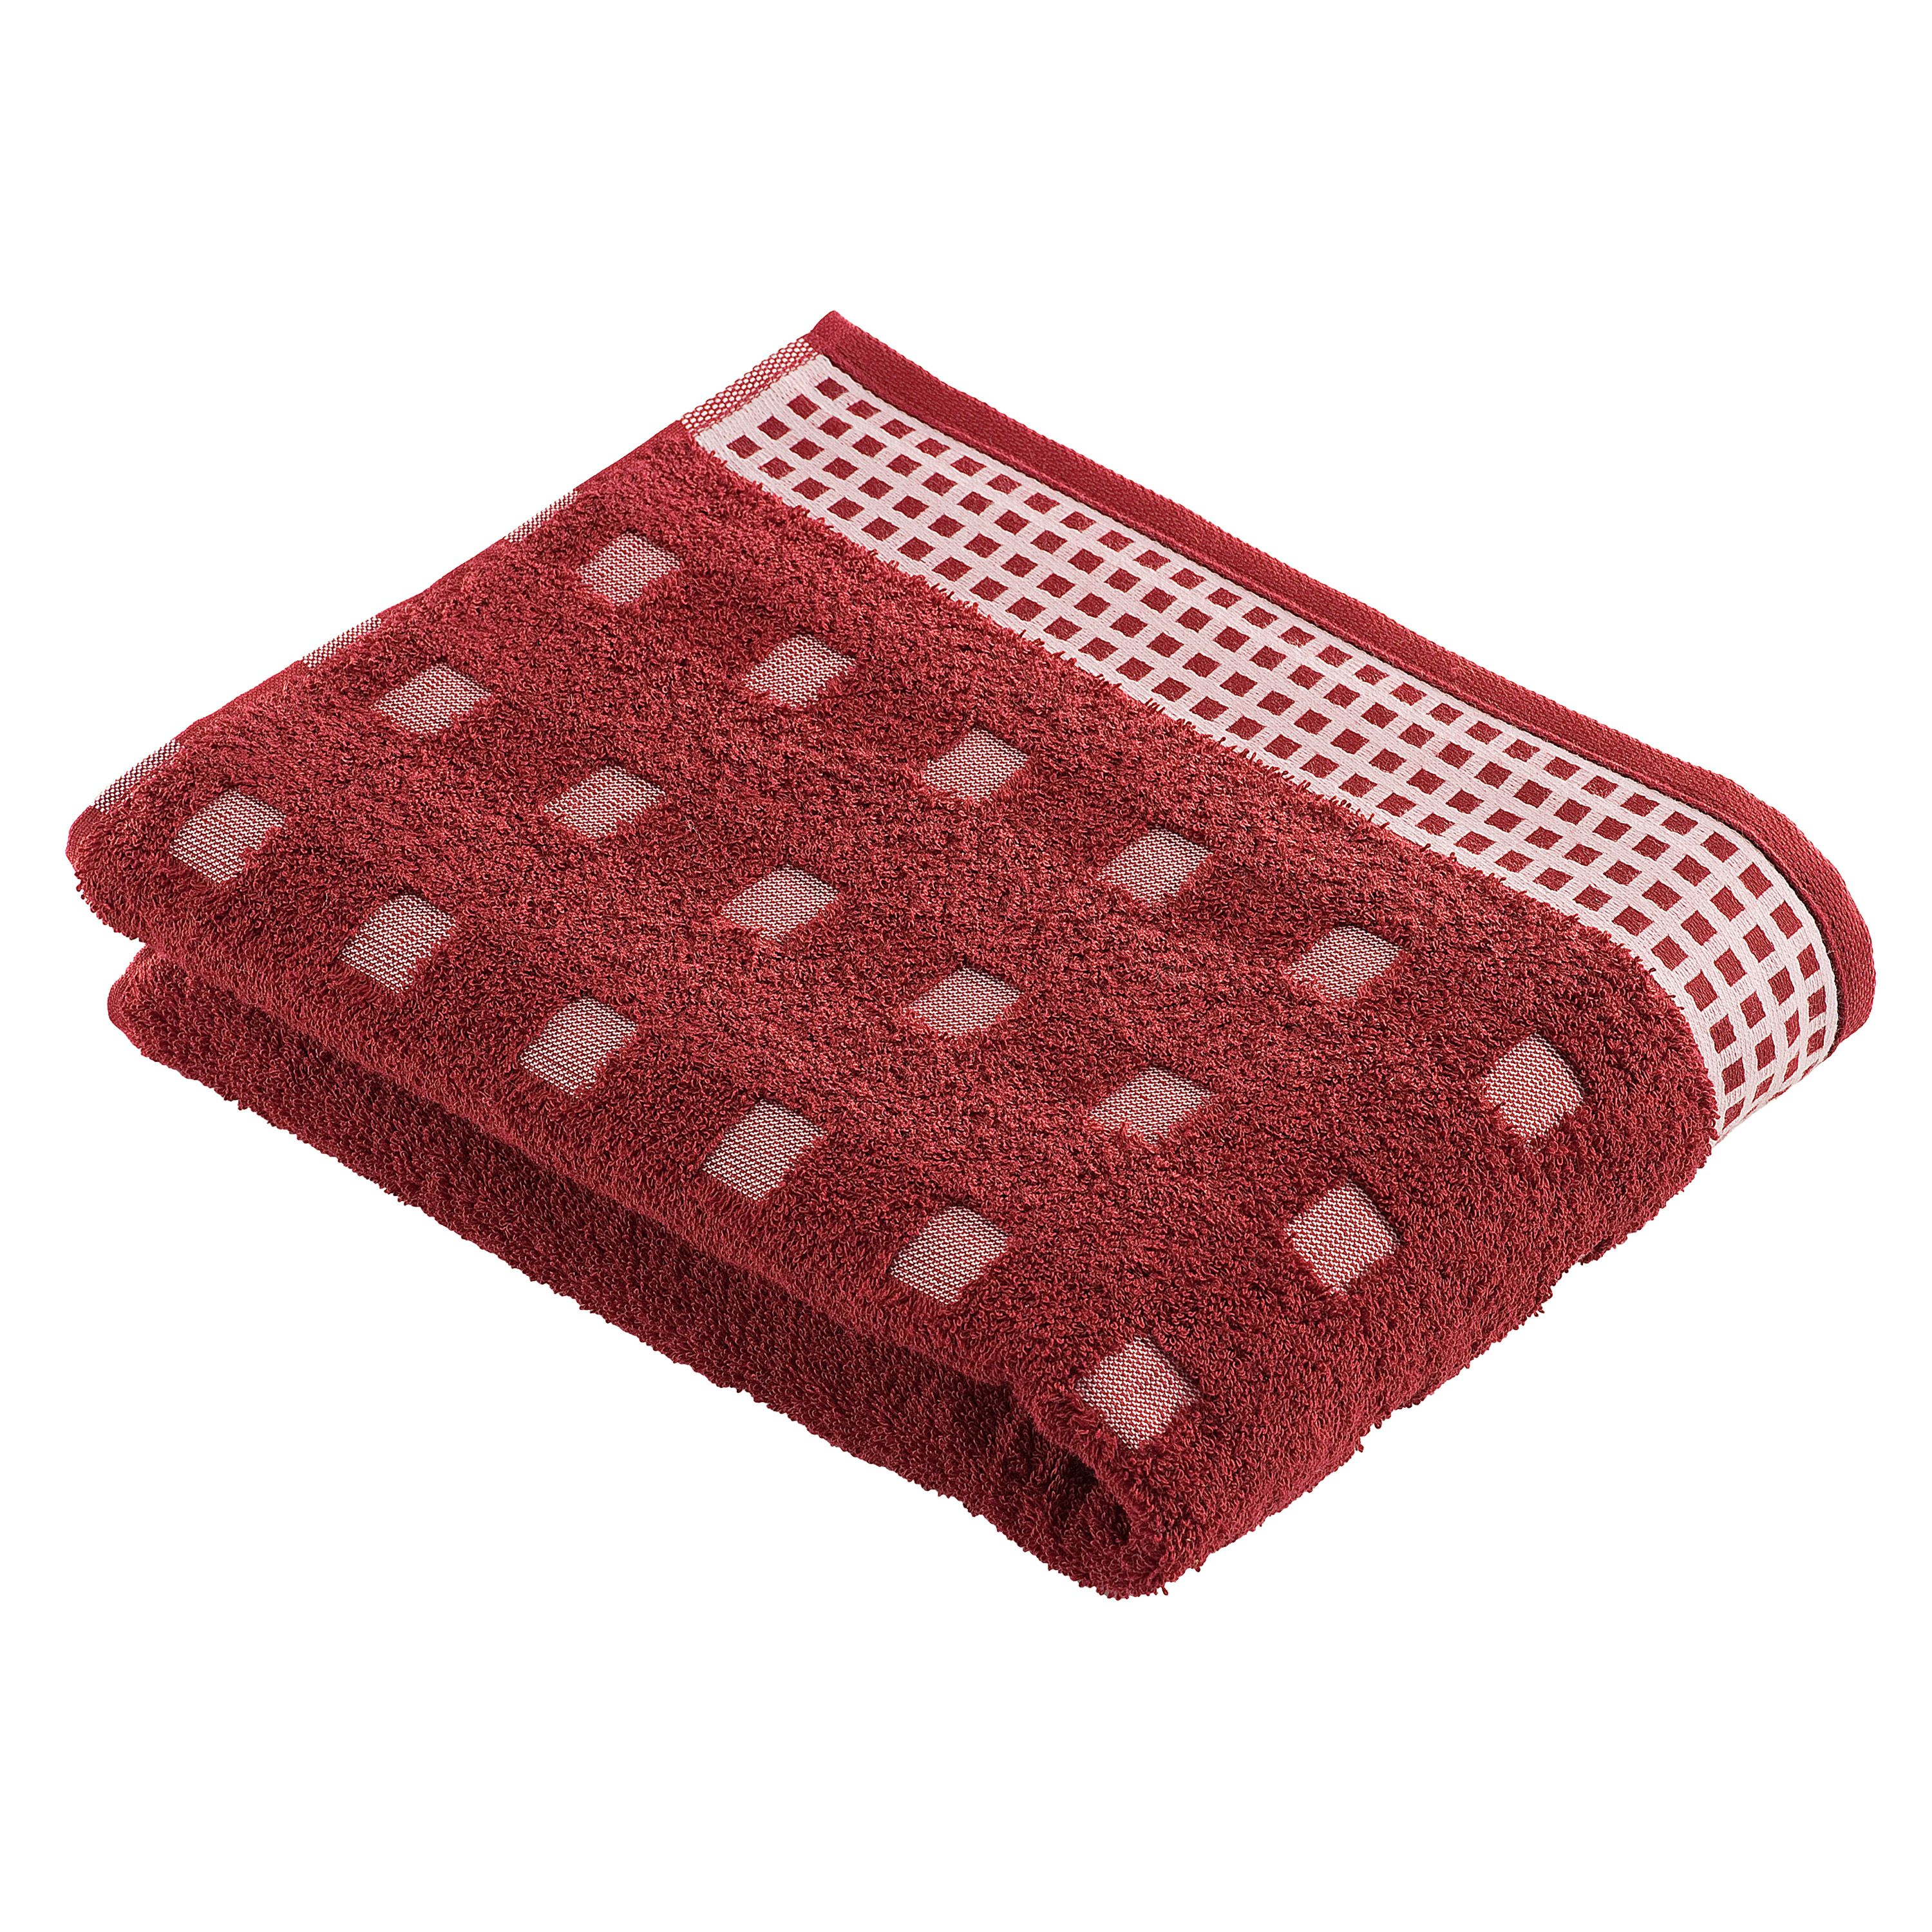 Country towel range in garnet